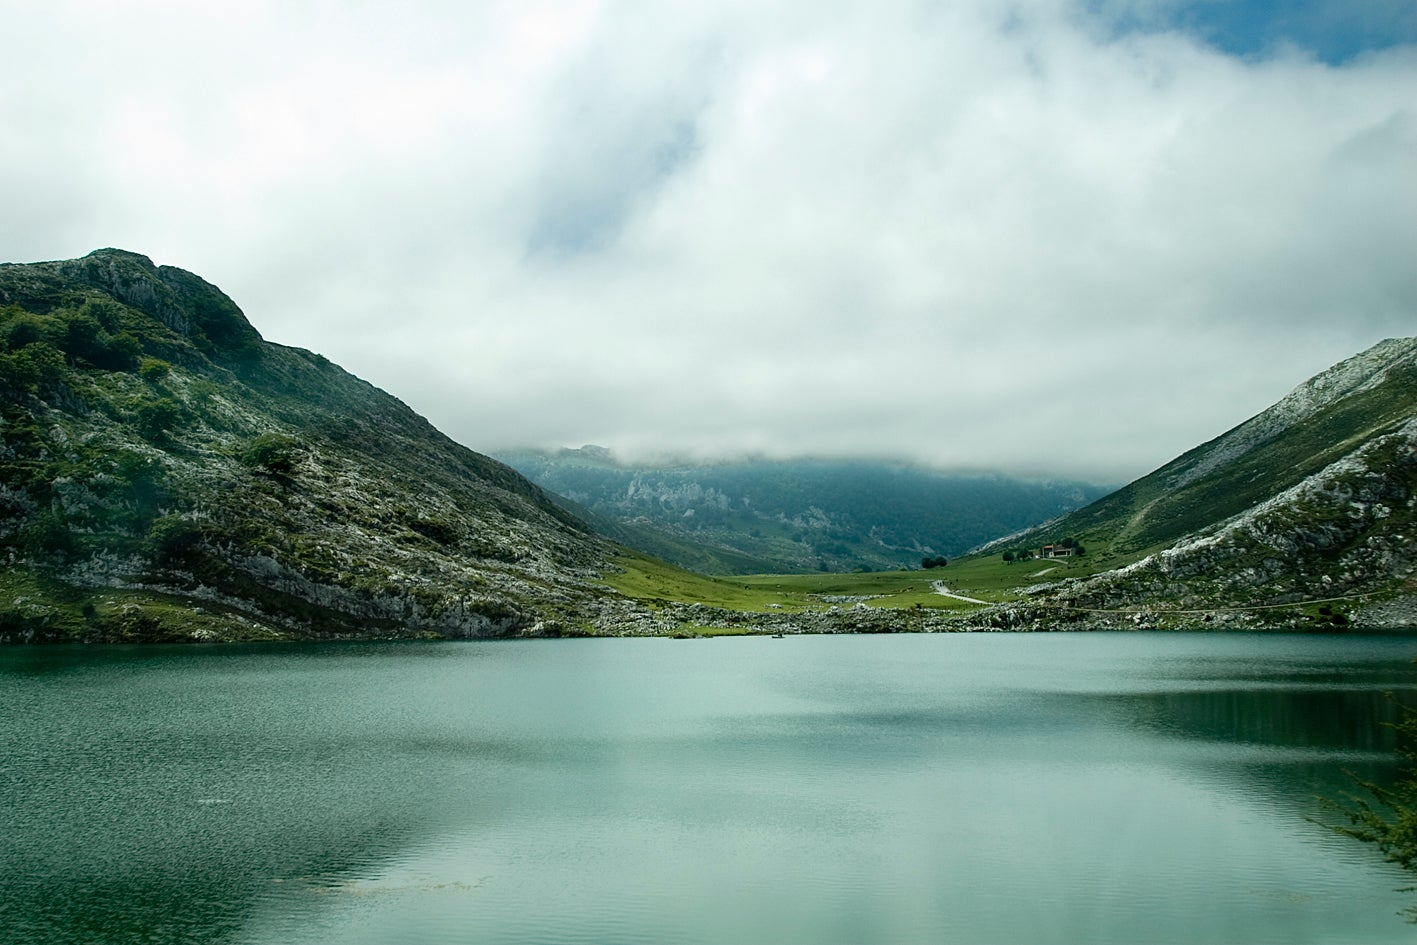 Fjord in The Lakes of Covadonga - Enol and Ercina lakes